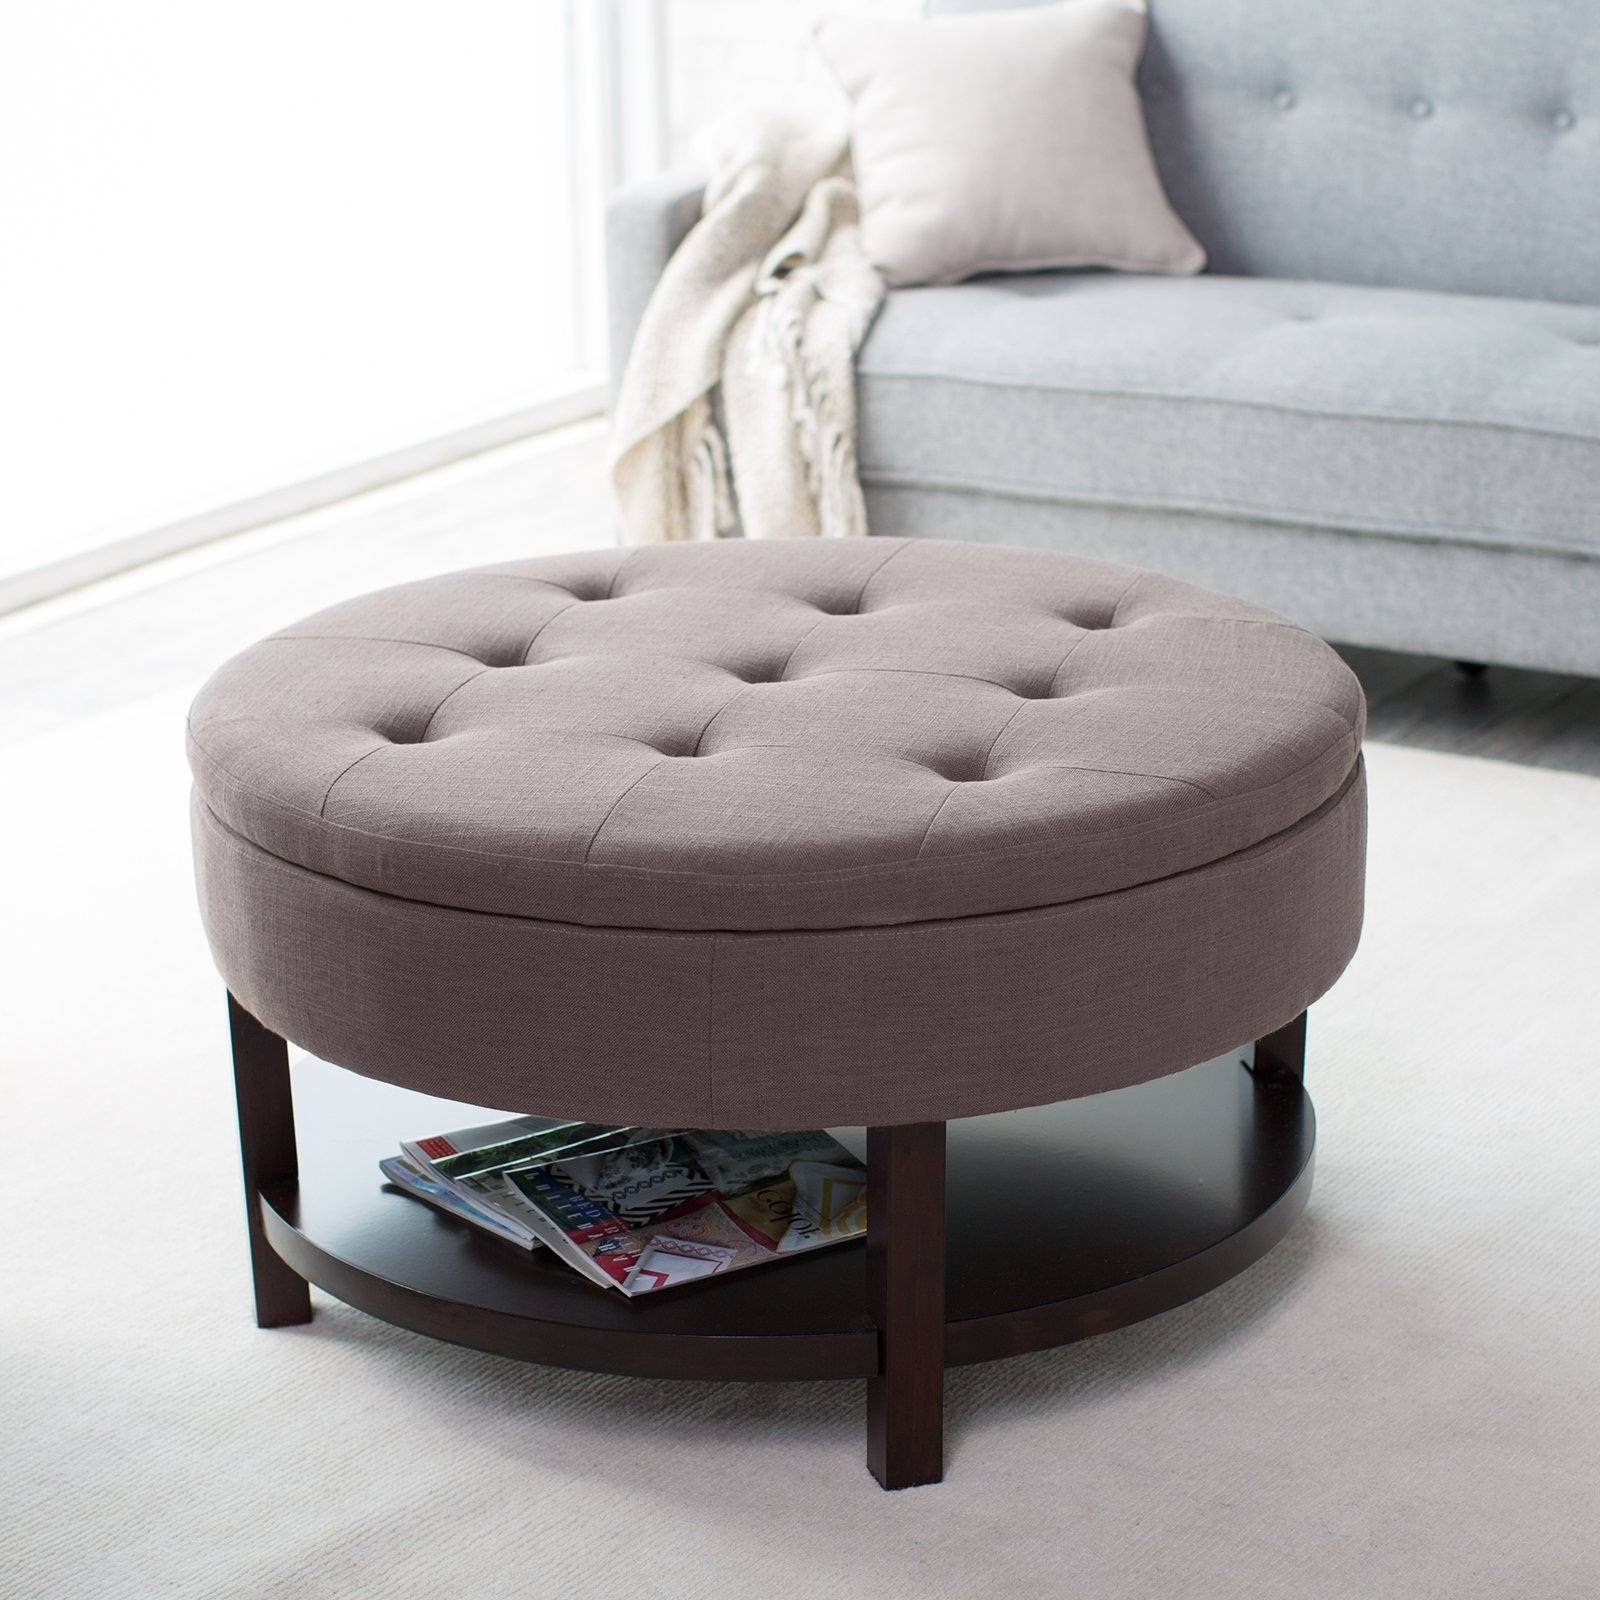 Coffee Table: Awesome Round Ottoman Coffee Table Upholstered Round For Round Upholstered Coffee Tables (View 2 of 30)